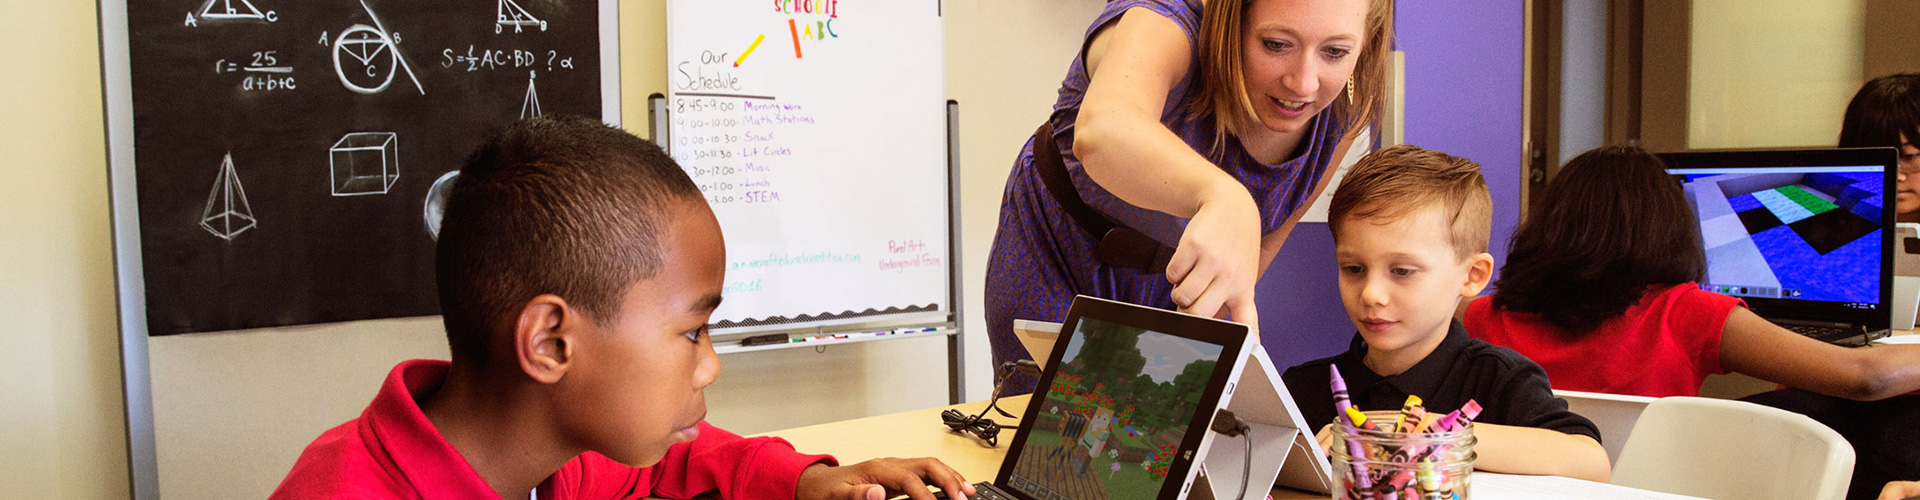 Lifestyle photo of teacher helping student with Minecraft Lesson.